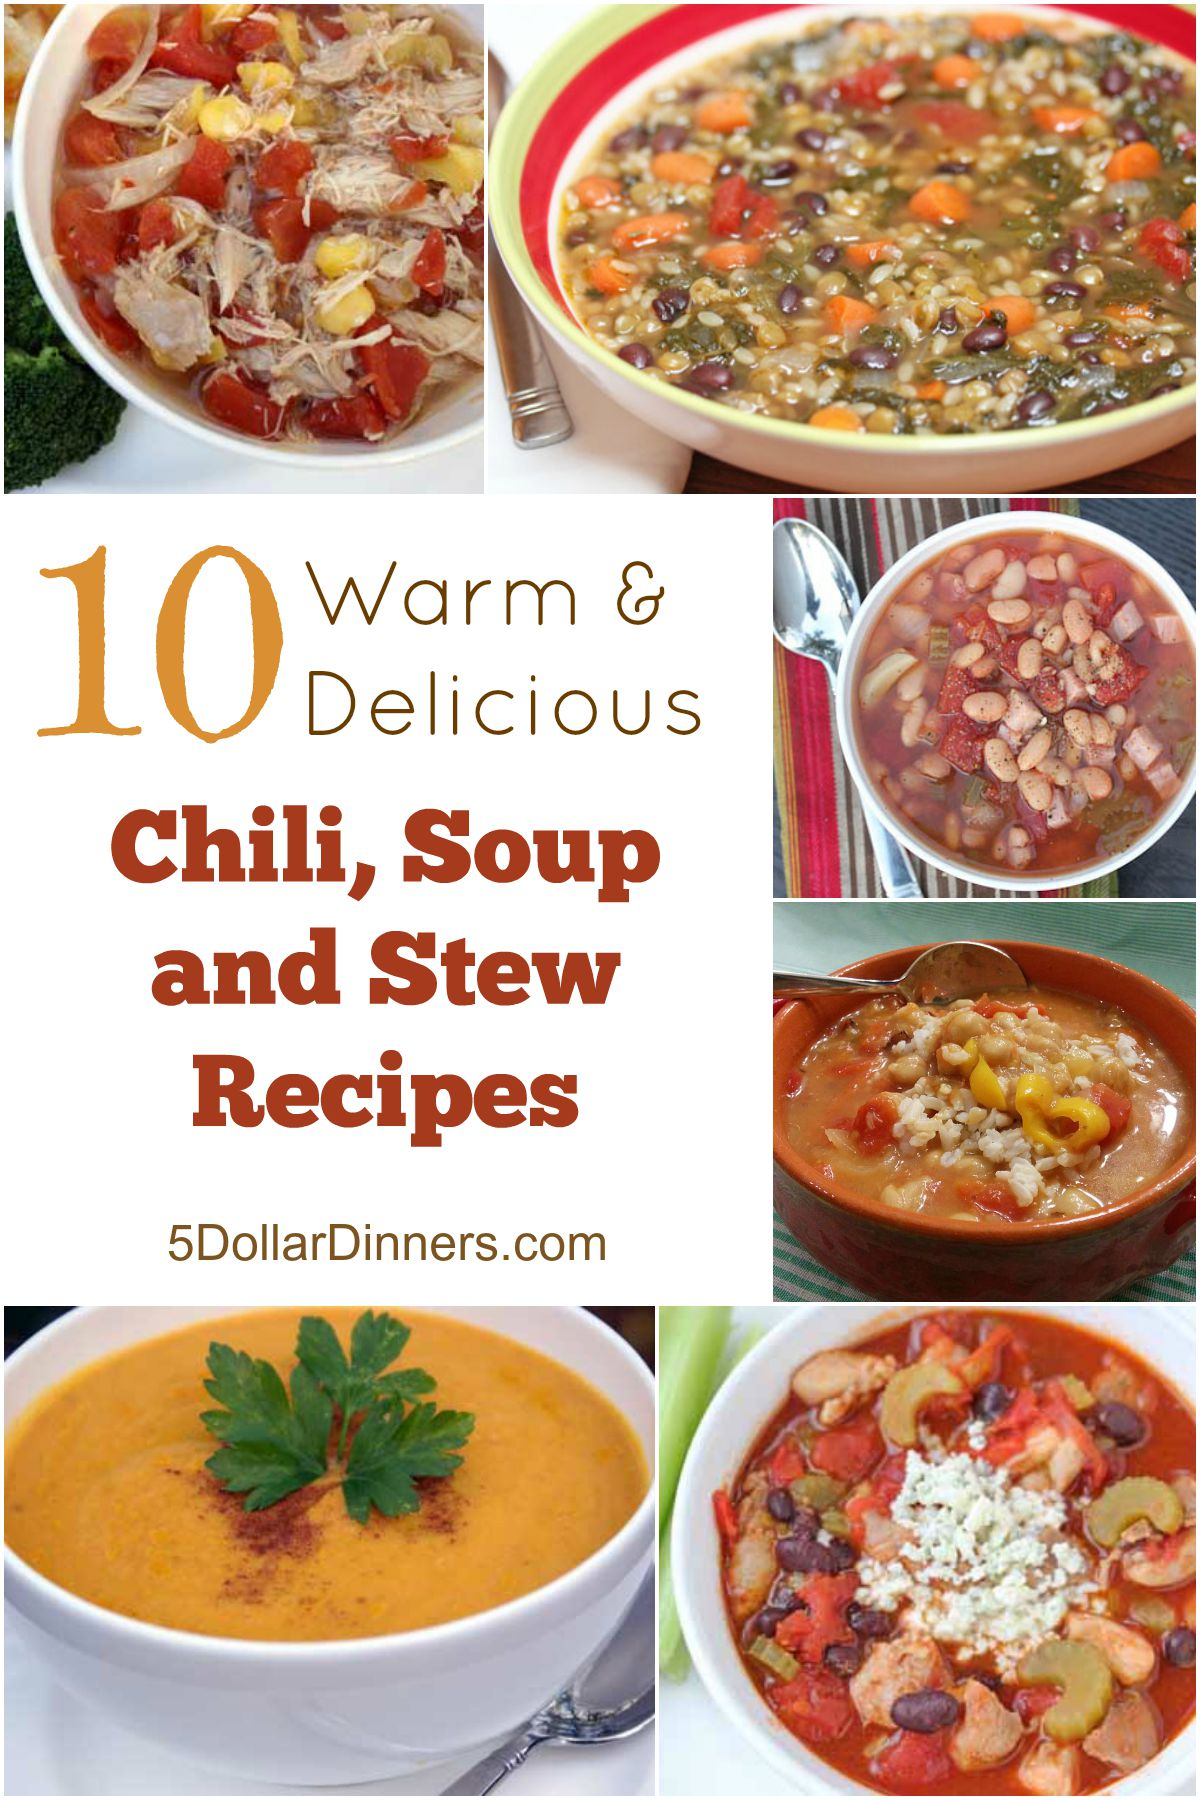 10 Chili, Soup and Stew Recipes from 5DollarDinners.com